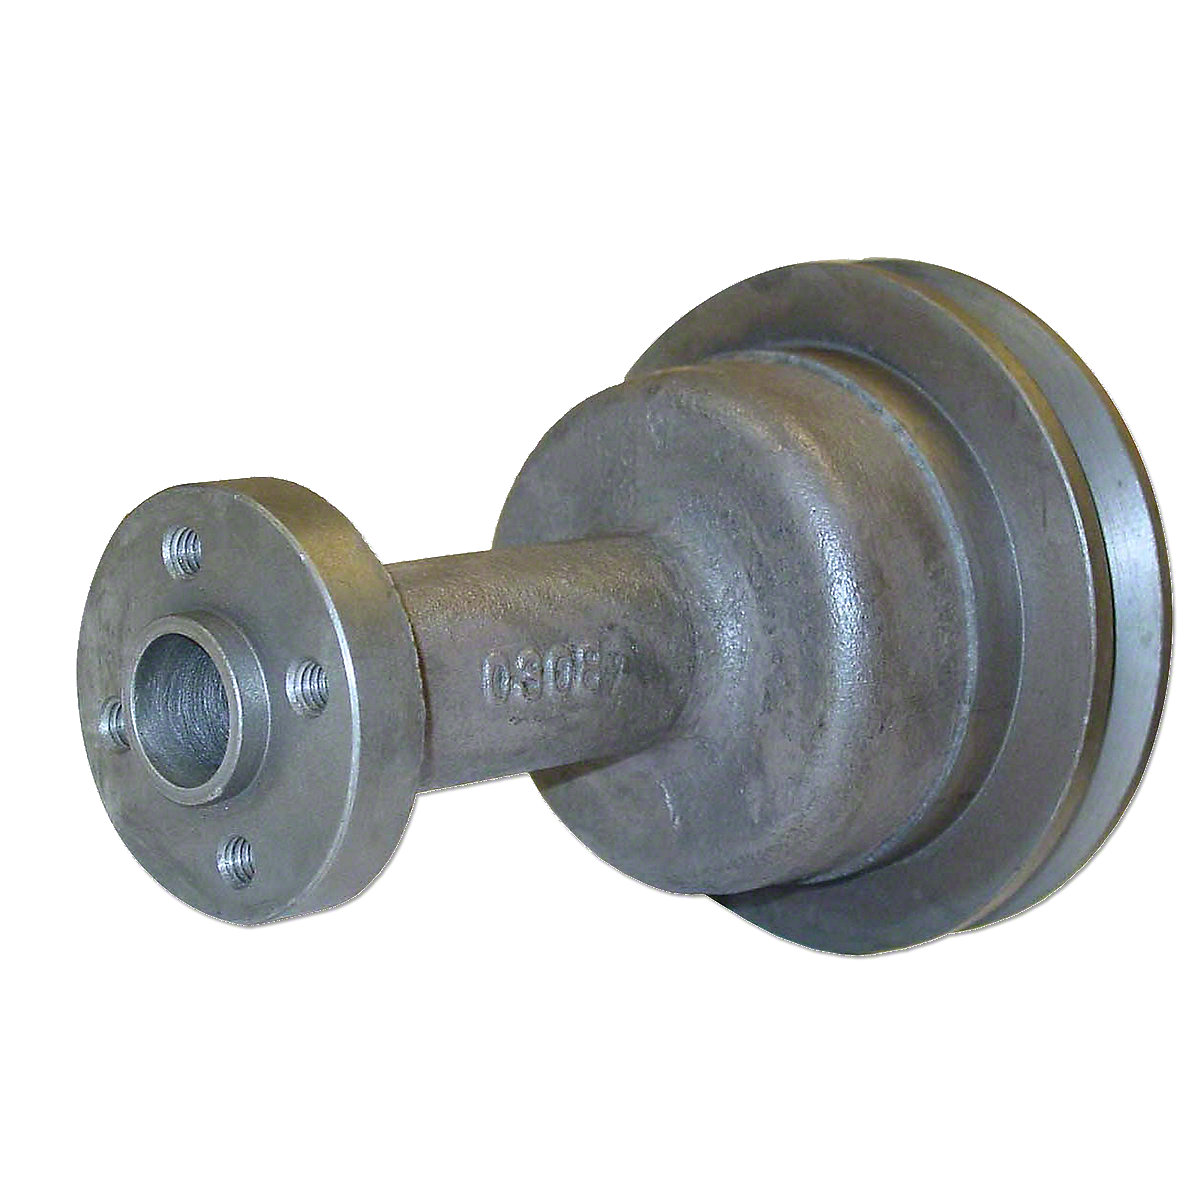 Water Pump Pulley For Massey Ferguson: TO35, 135, 230, 235, 245, 35.